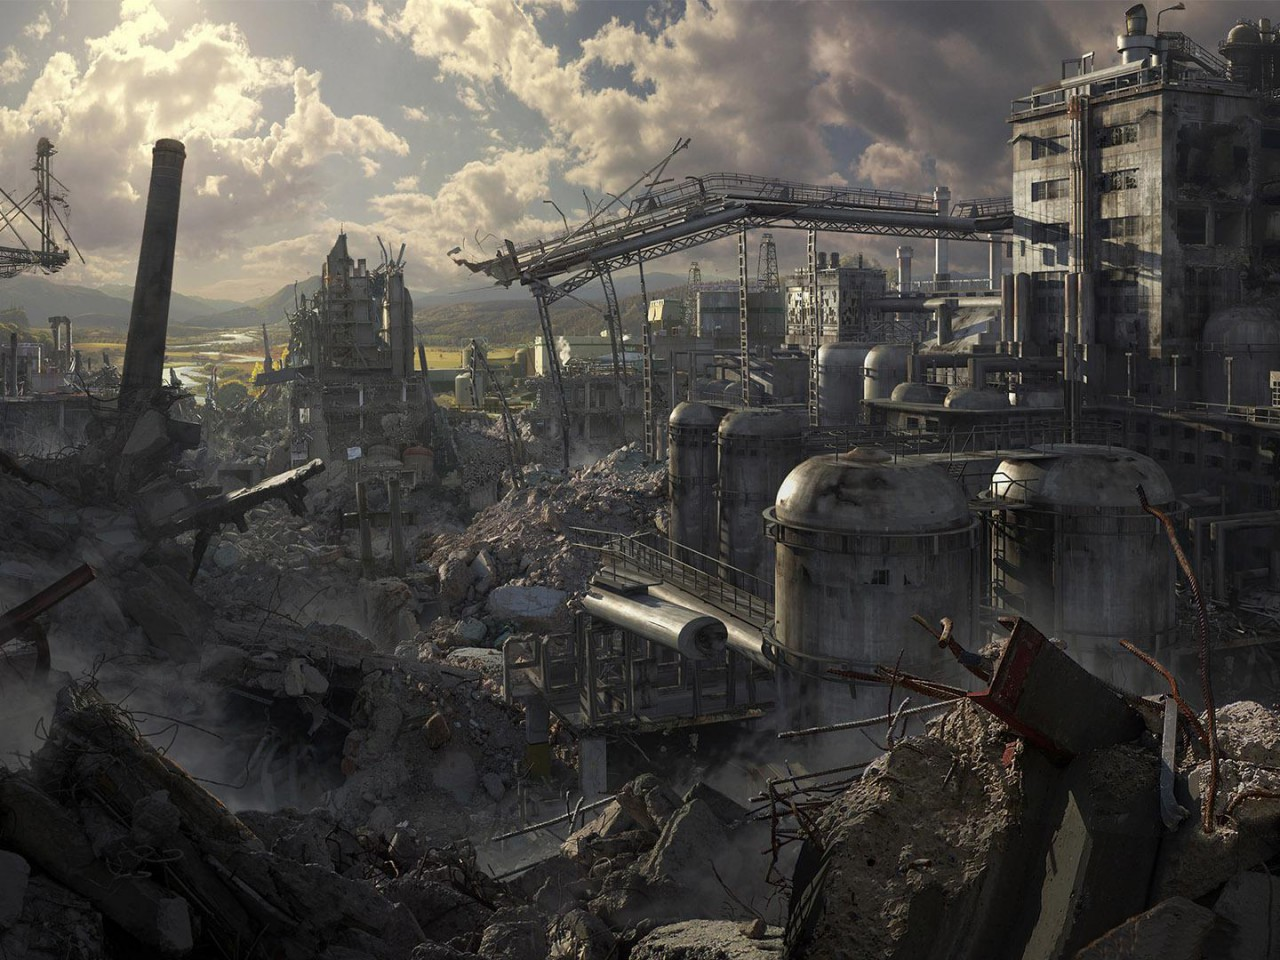 3203543-1-miscellaneous-digital-art-apocalyptic-destruction-city-in-ruins-wallpaper.jpg